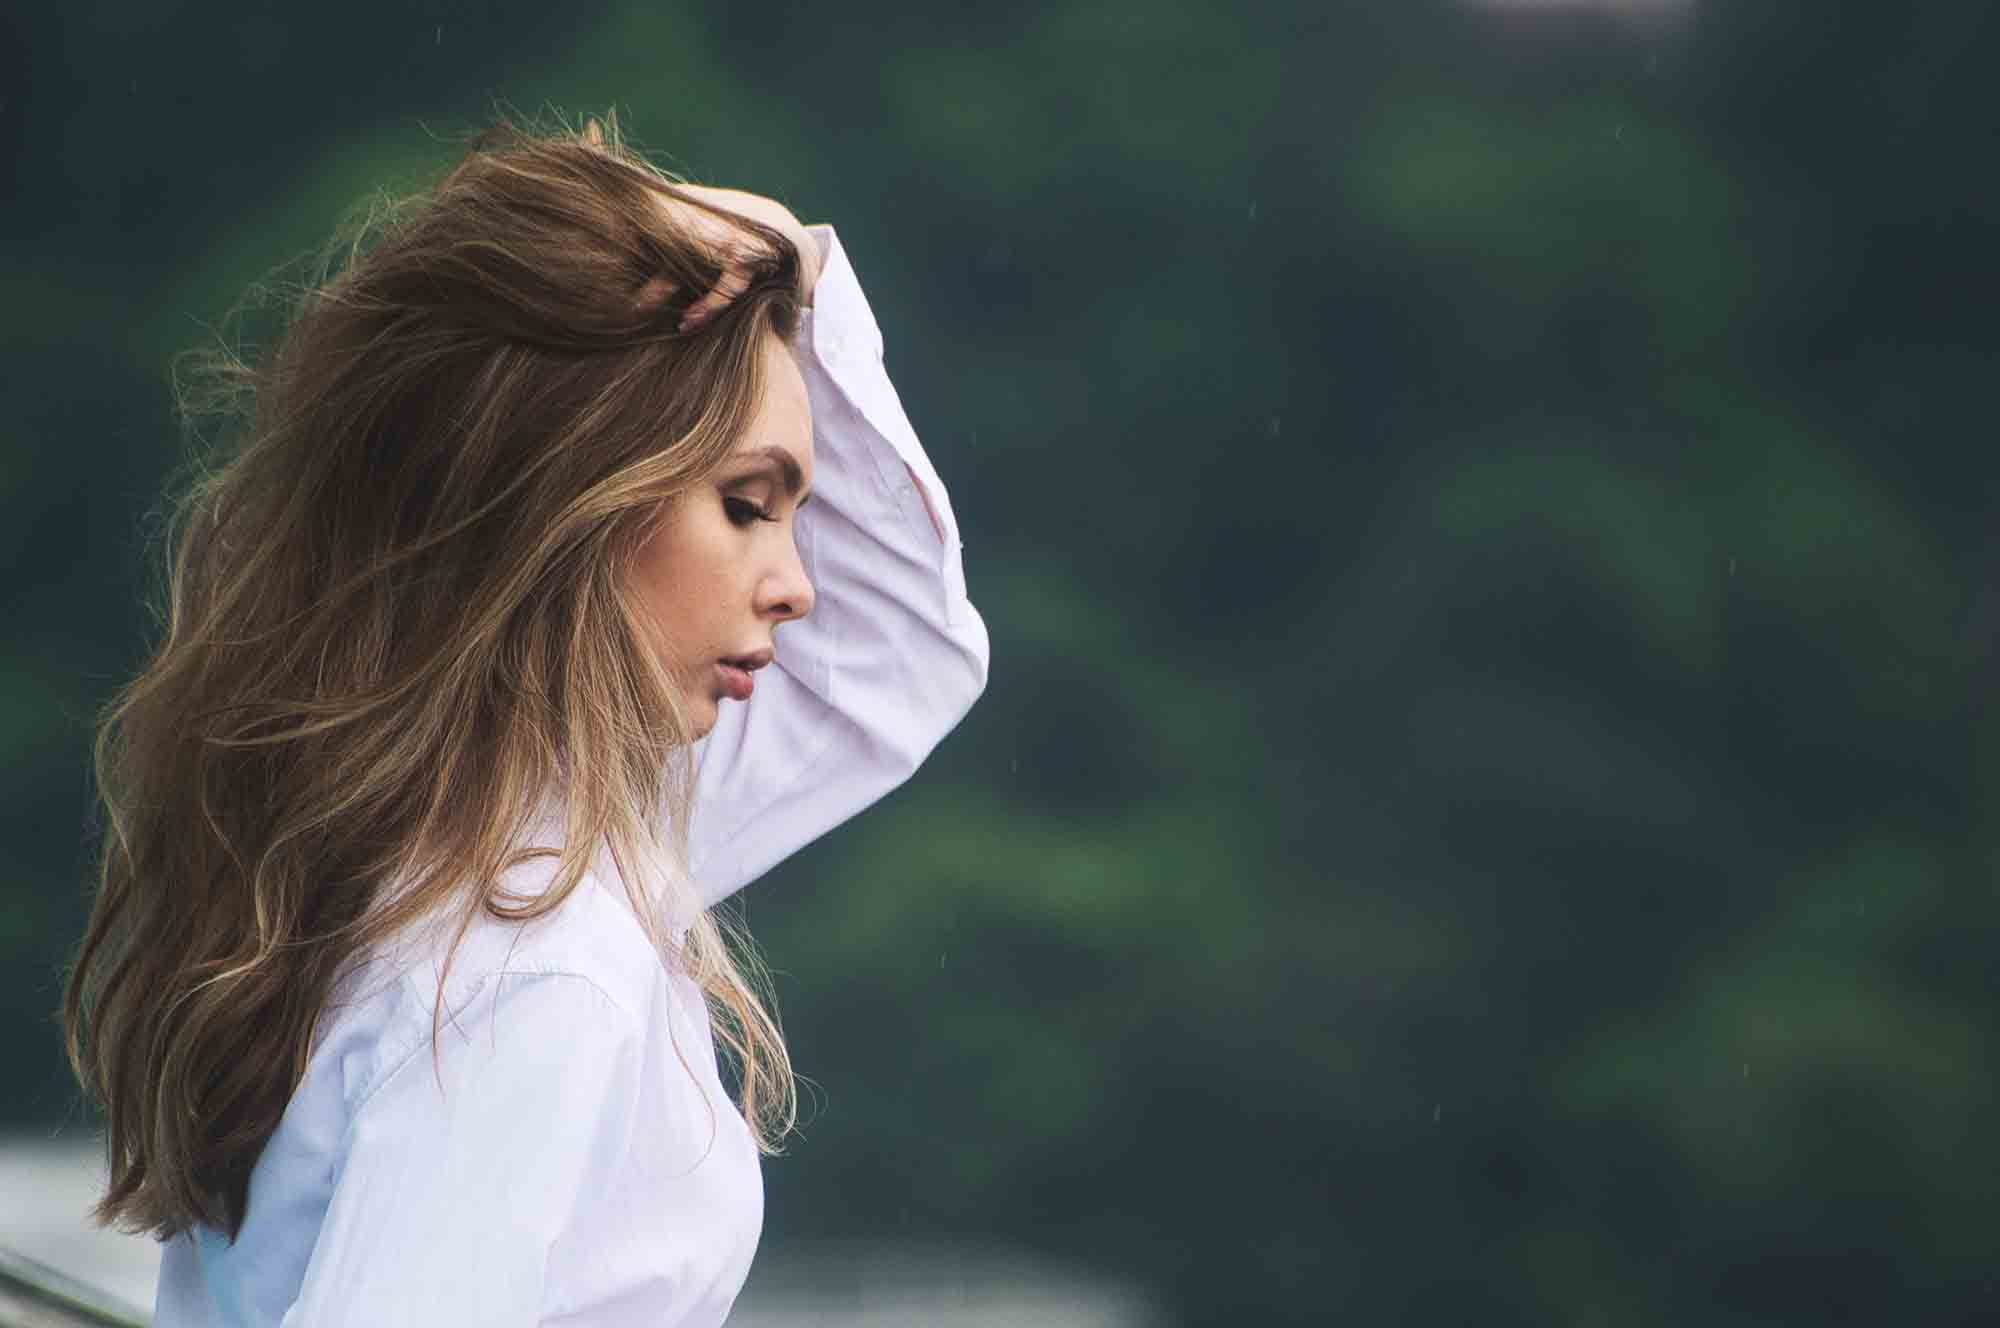 Break Up With The Narcissist: Get Closure